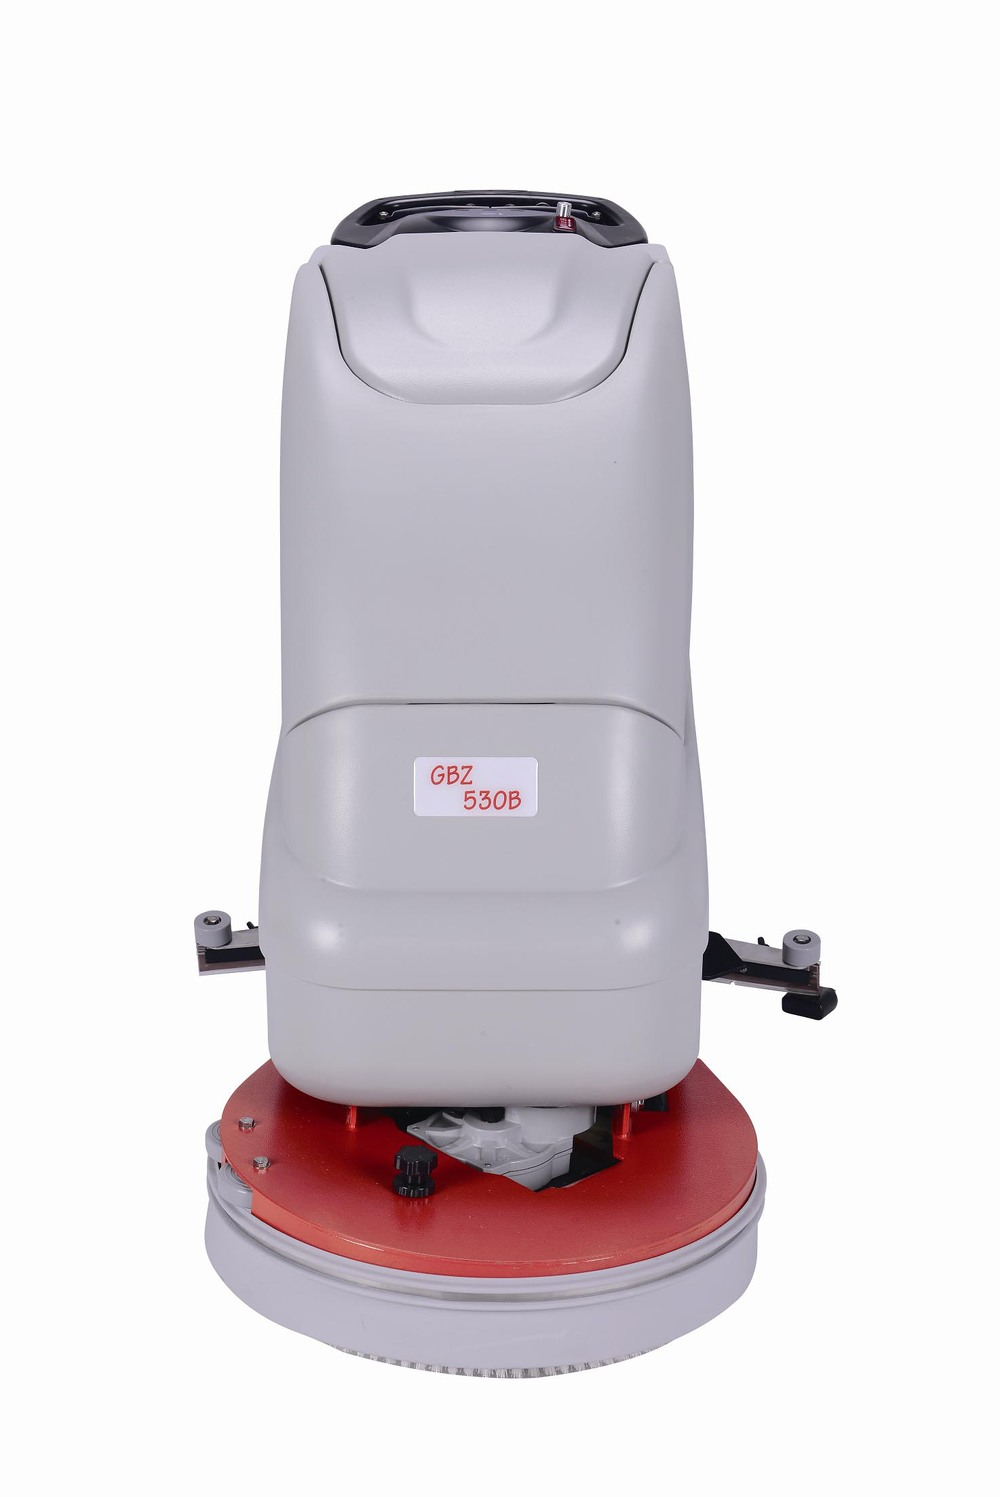 floor Scrubbing Machine/ sweeper